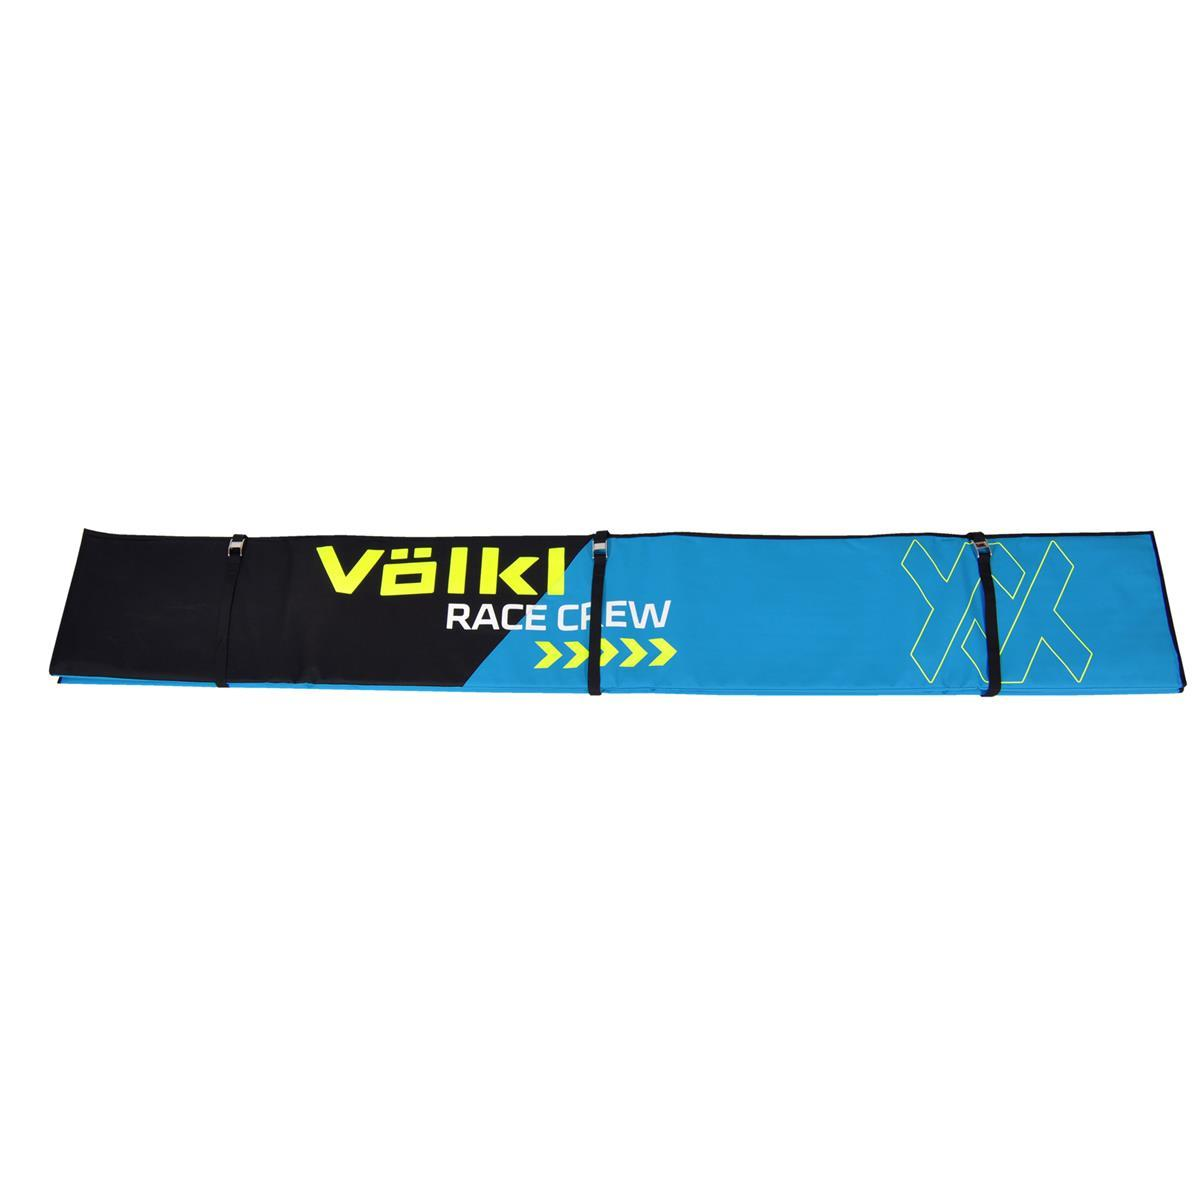 Völkl Race 4Pair Ski Bag padded